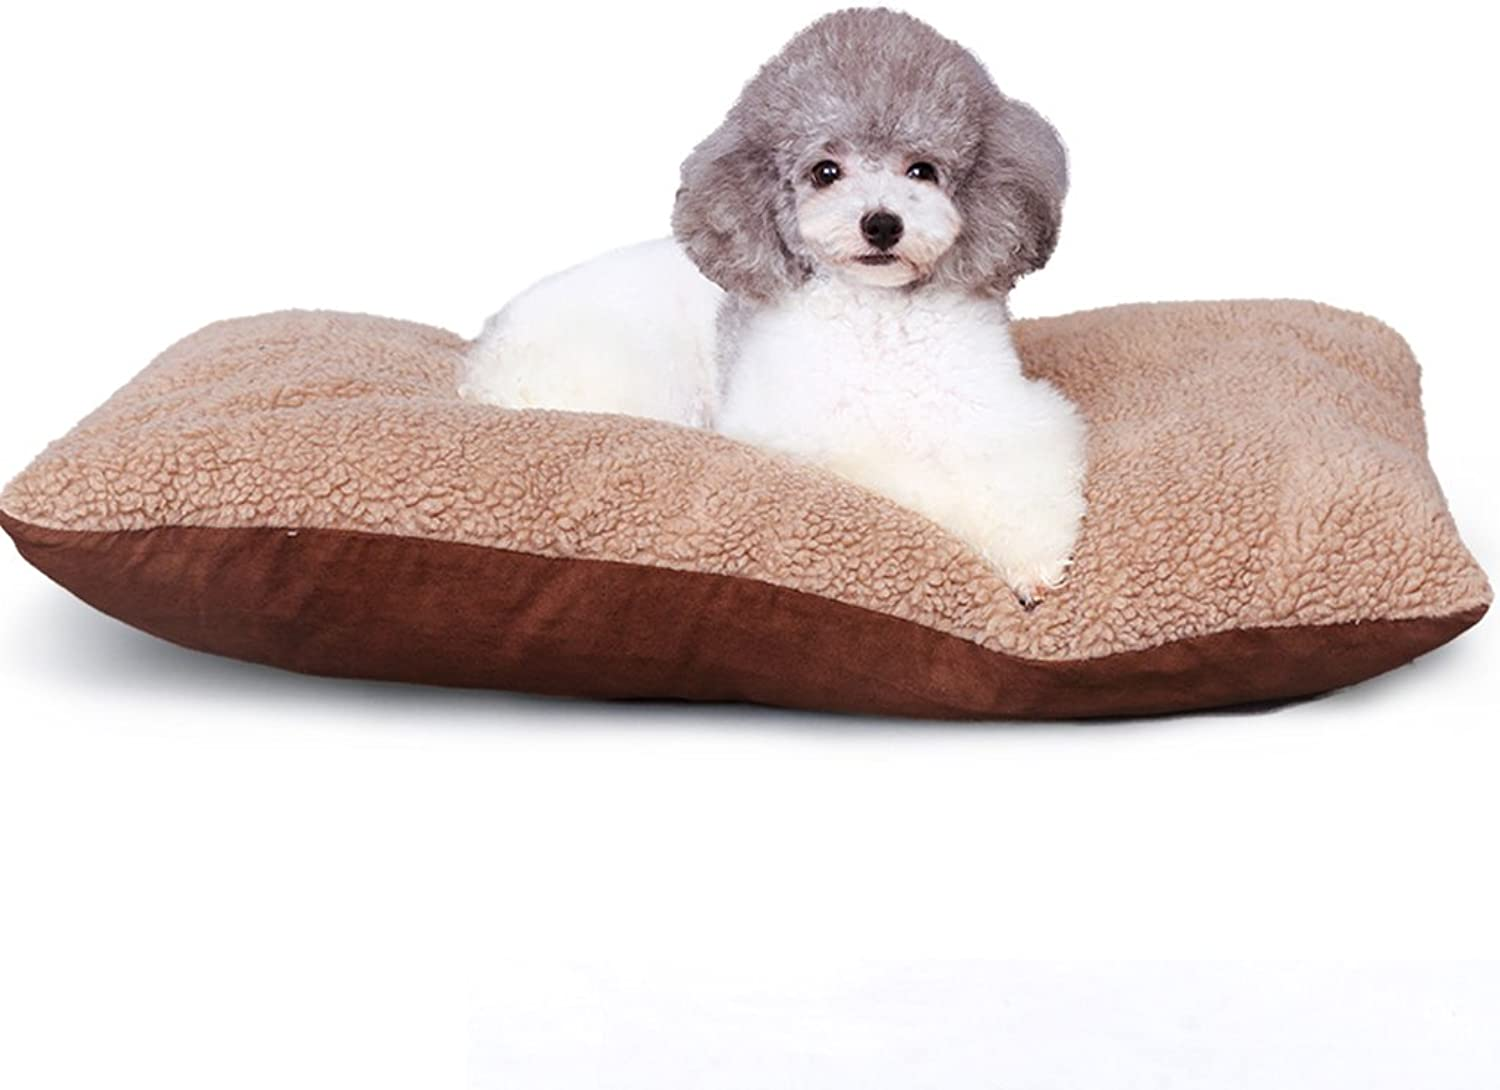 BEDS Dogs Furniture Soft cats dogs cushions pet cozy dog (Size   M)